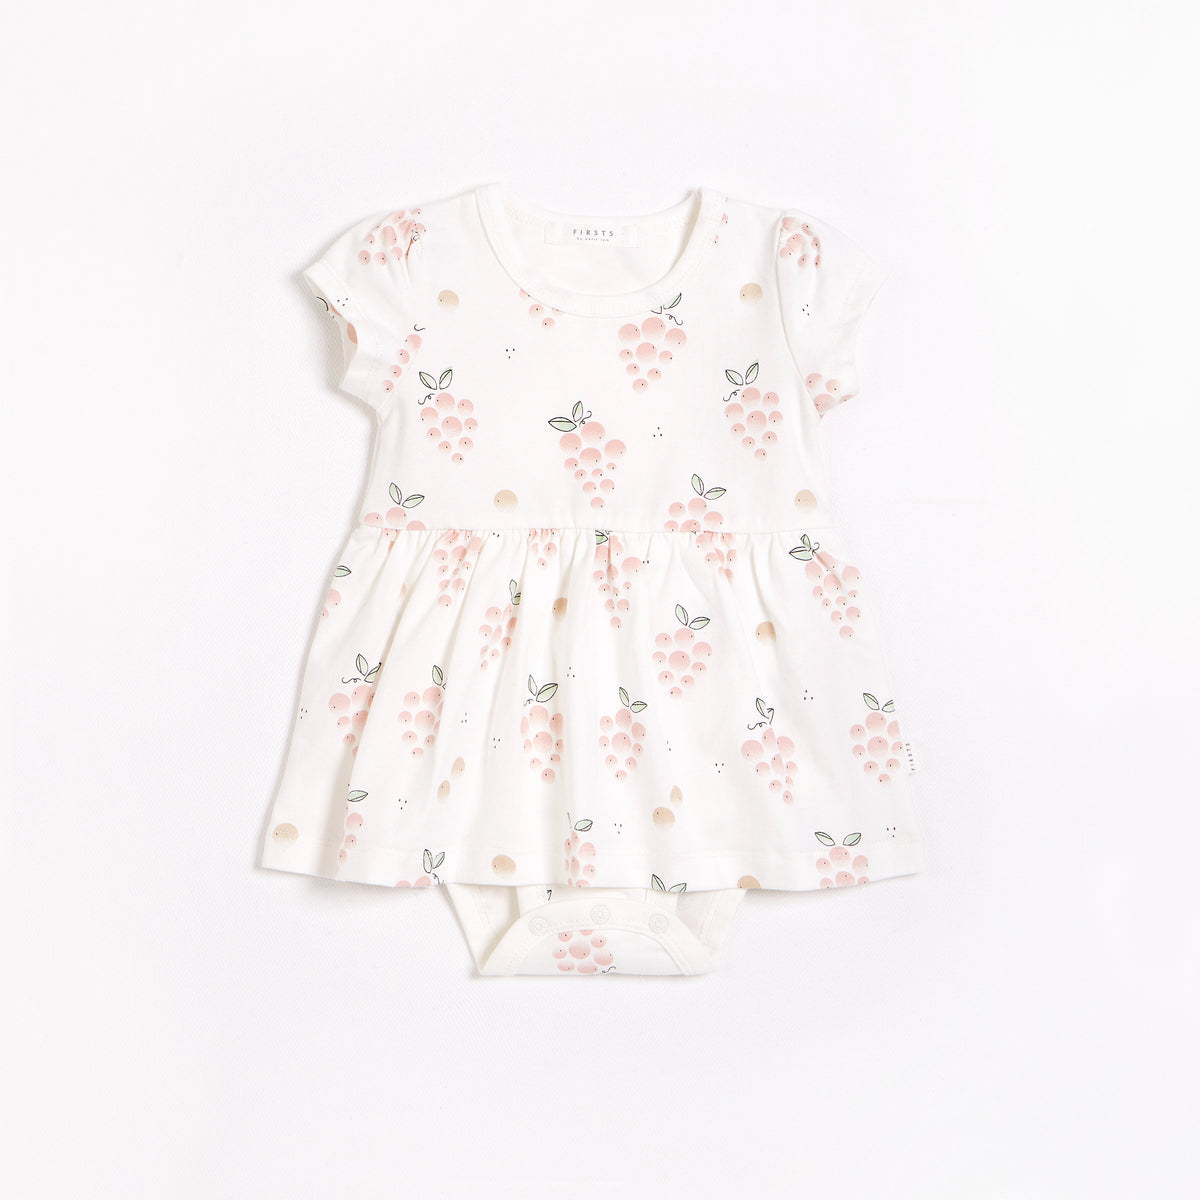 La Vie en Rose Print on Jersey Peplum Dress